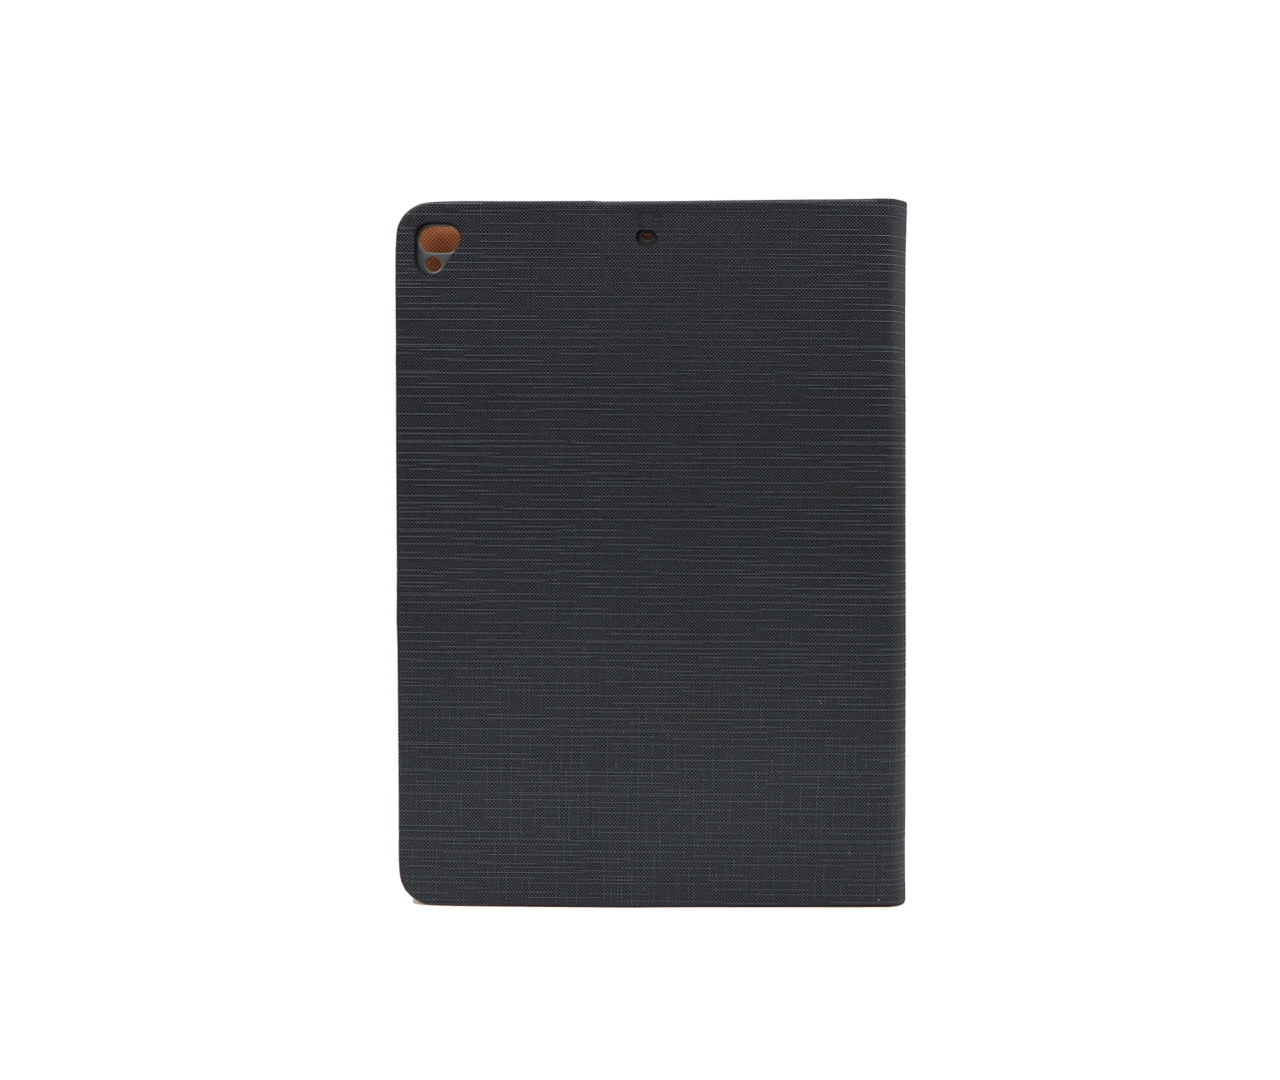 IKAKU Silk Series Flip Cover For Ipad Pro (9.7